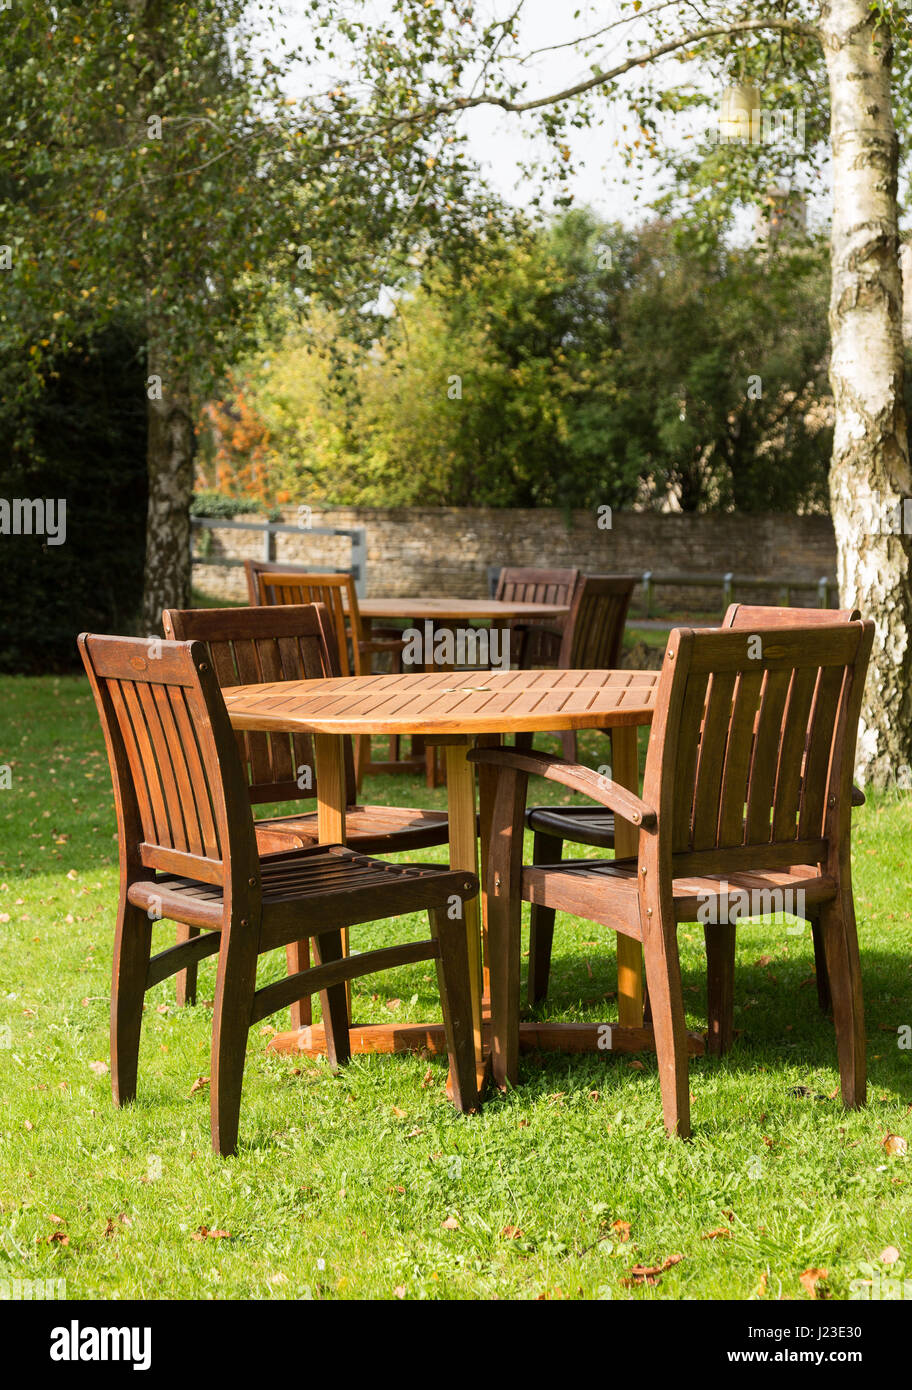 Garden Furniture Tables And Chairs Stock Photo Royalty Free